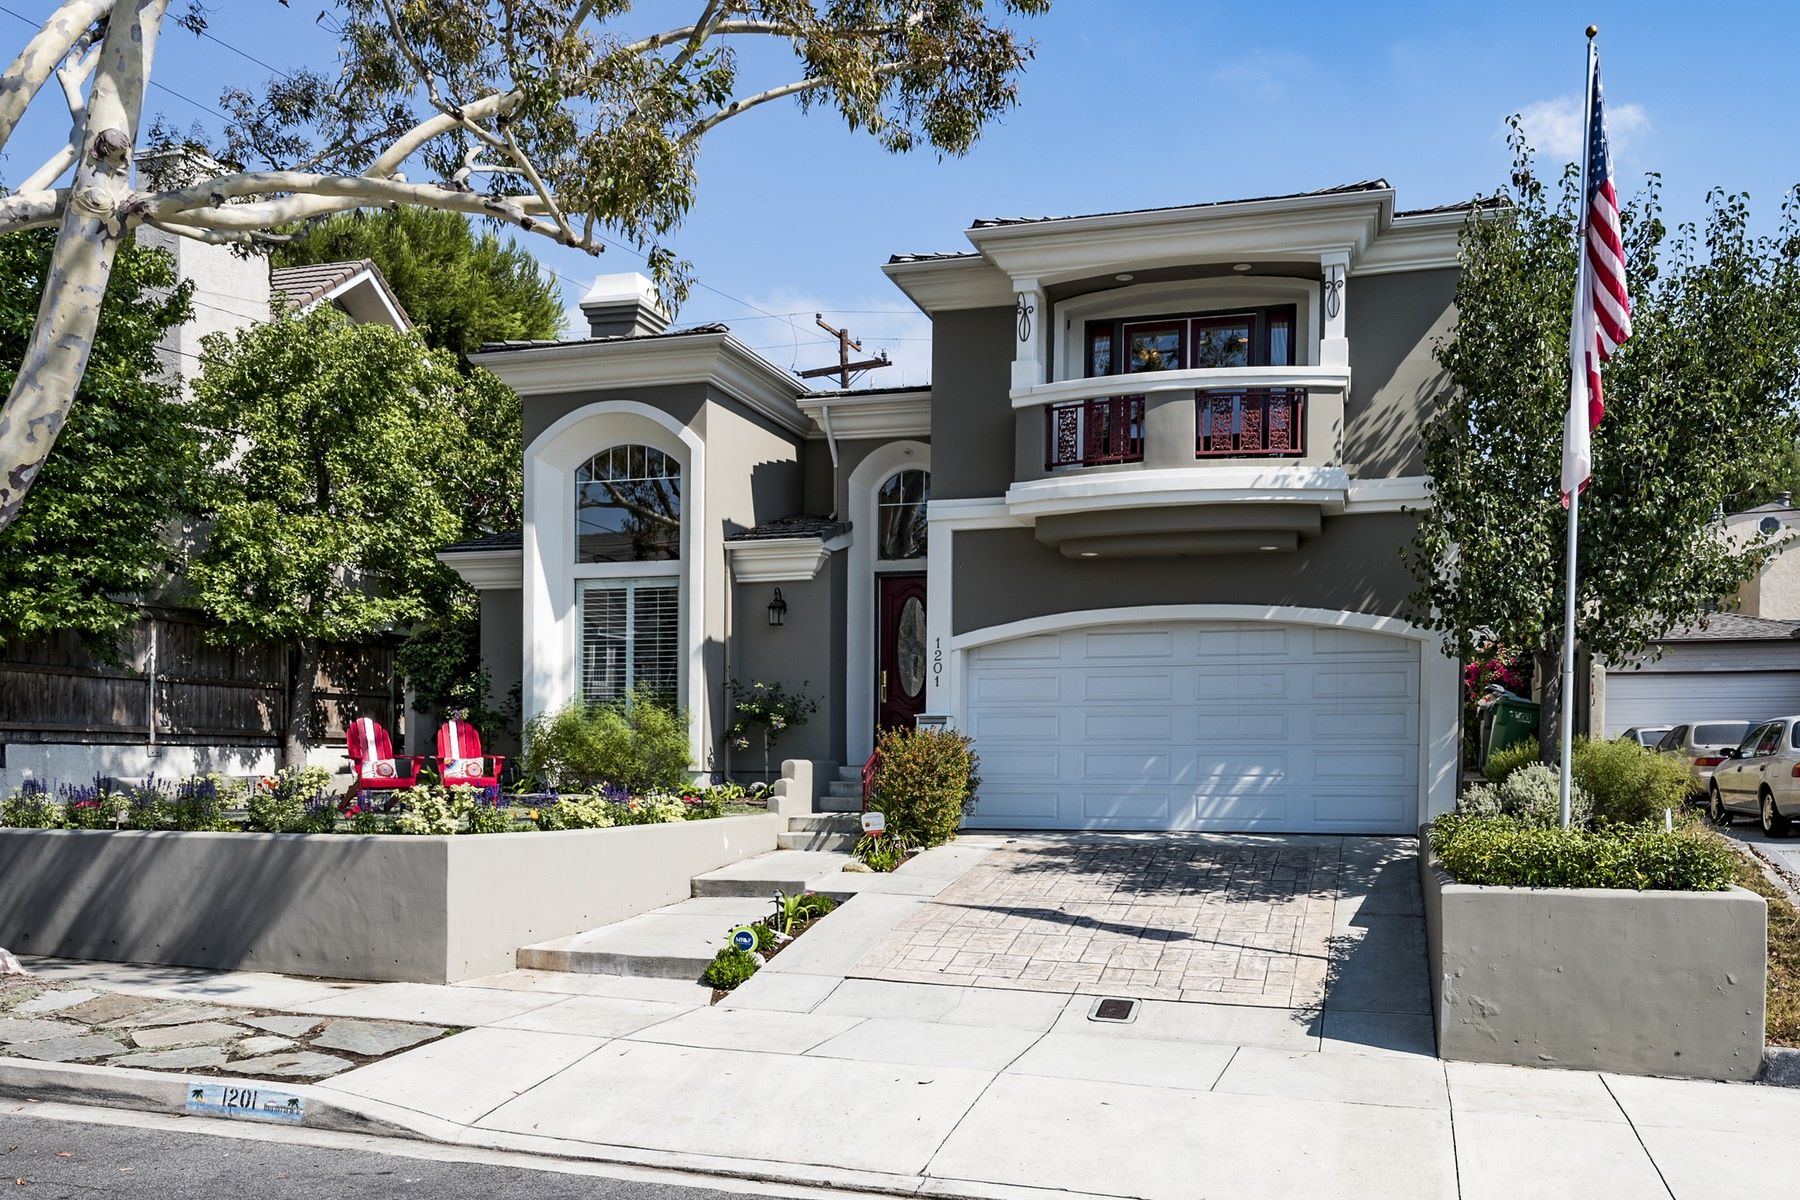 Single Family Home for Sale at 1201 17th St Manhattan Beach, California 90266 United States